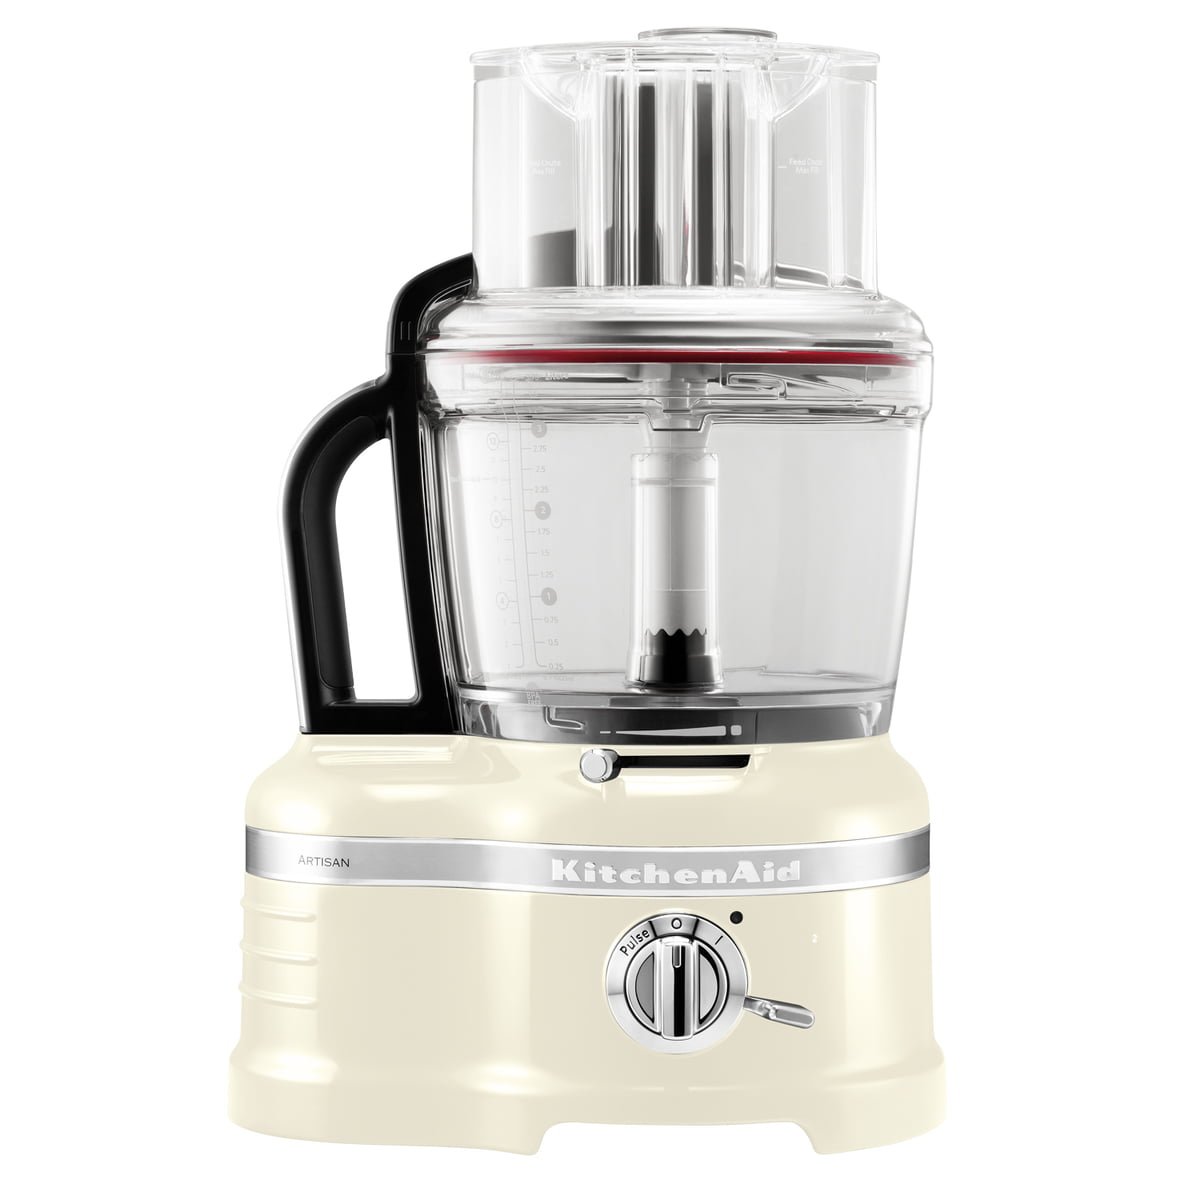 categories l creme artisan processor appliances food electronics kitchen aid cream home by kitchenaid